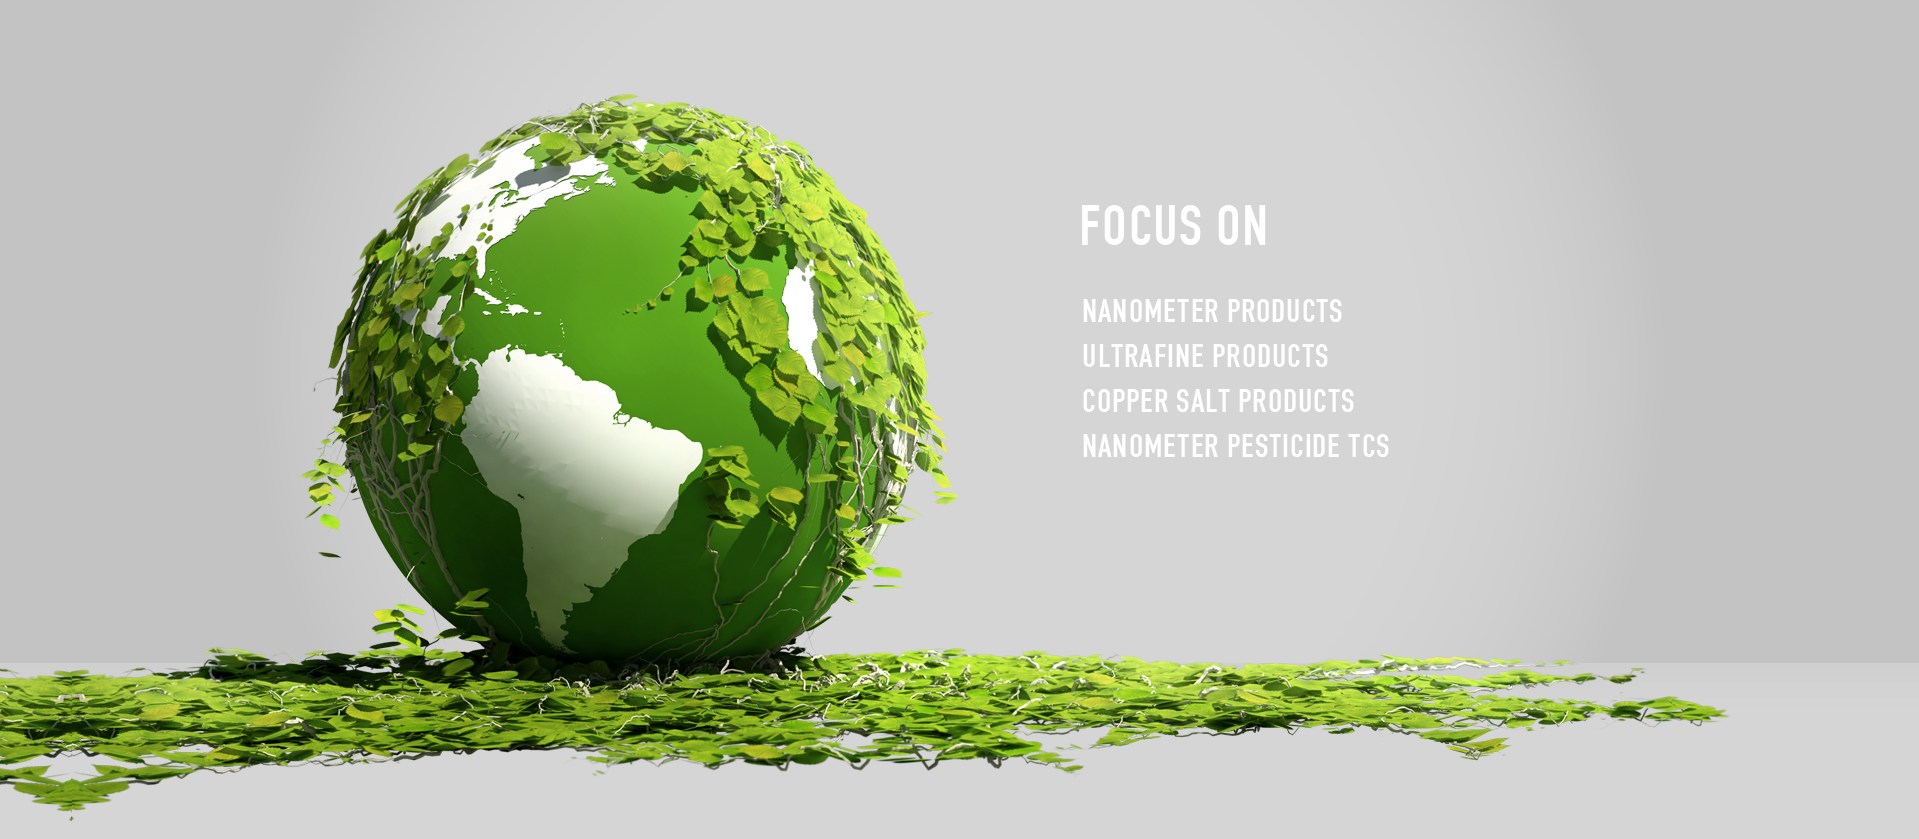 Nanometer Products